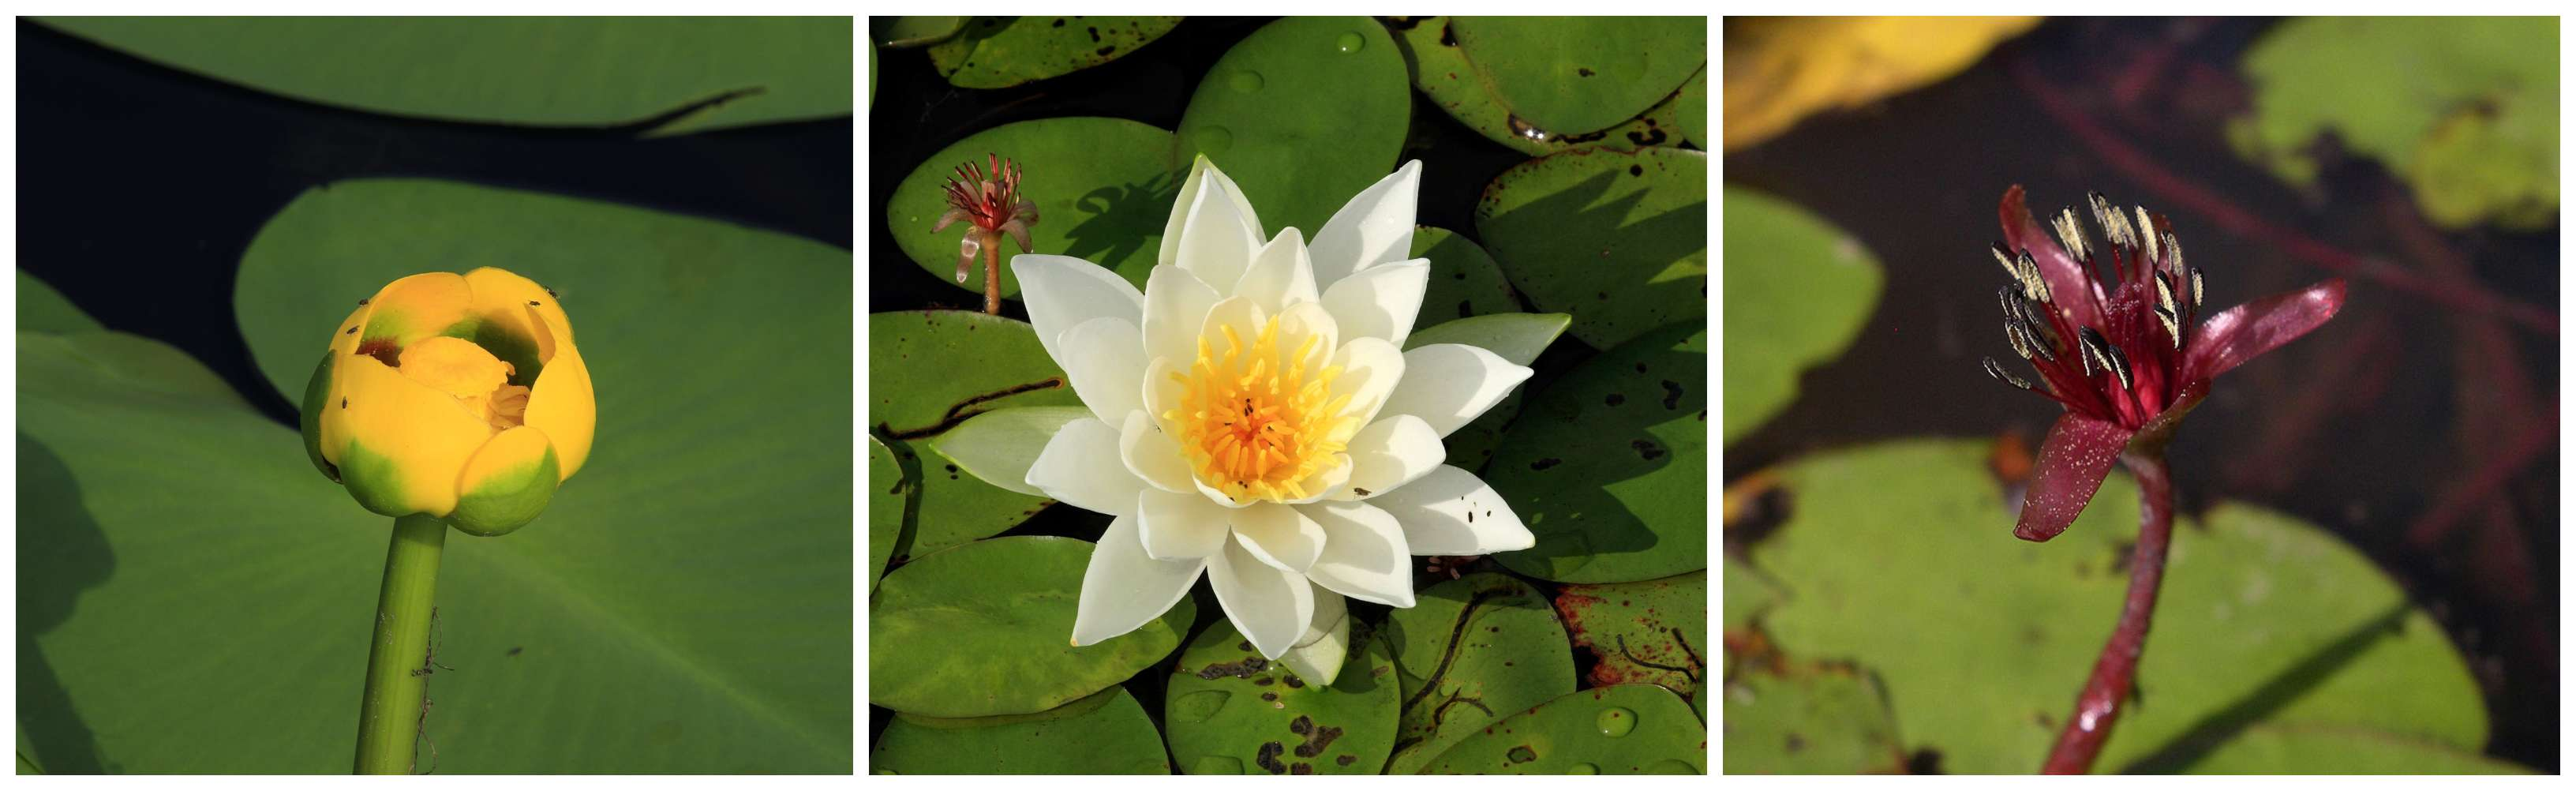 Yellow waterlily_white waterlily_watershield